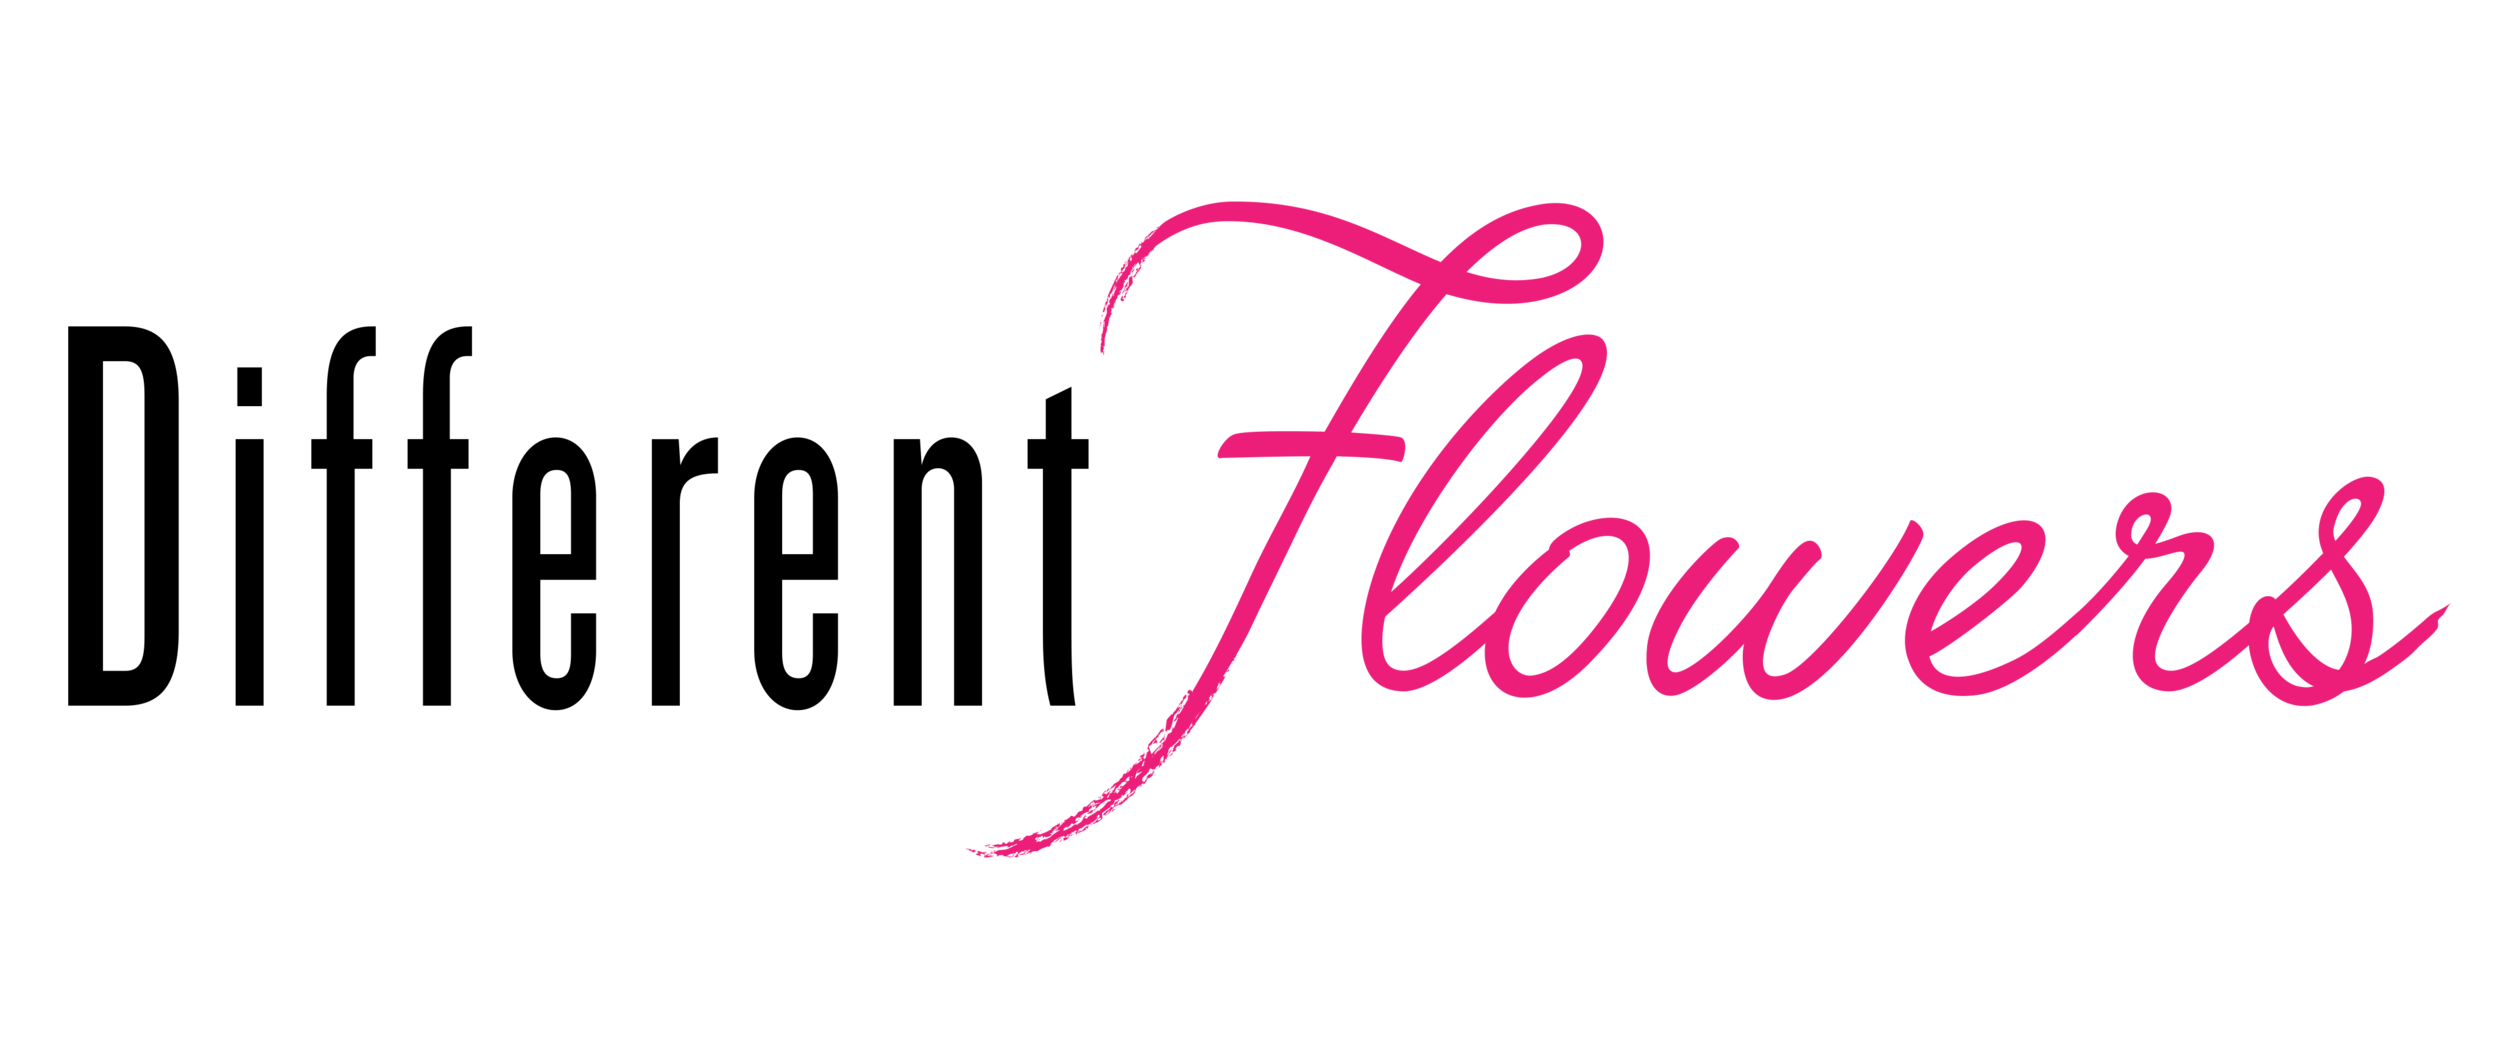 Different Flowers Logo